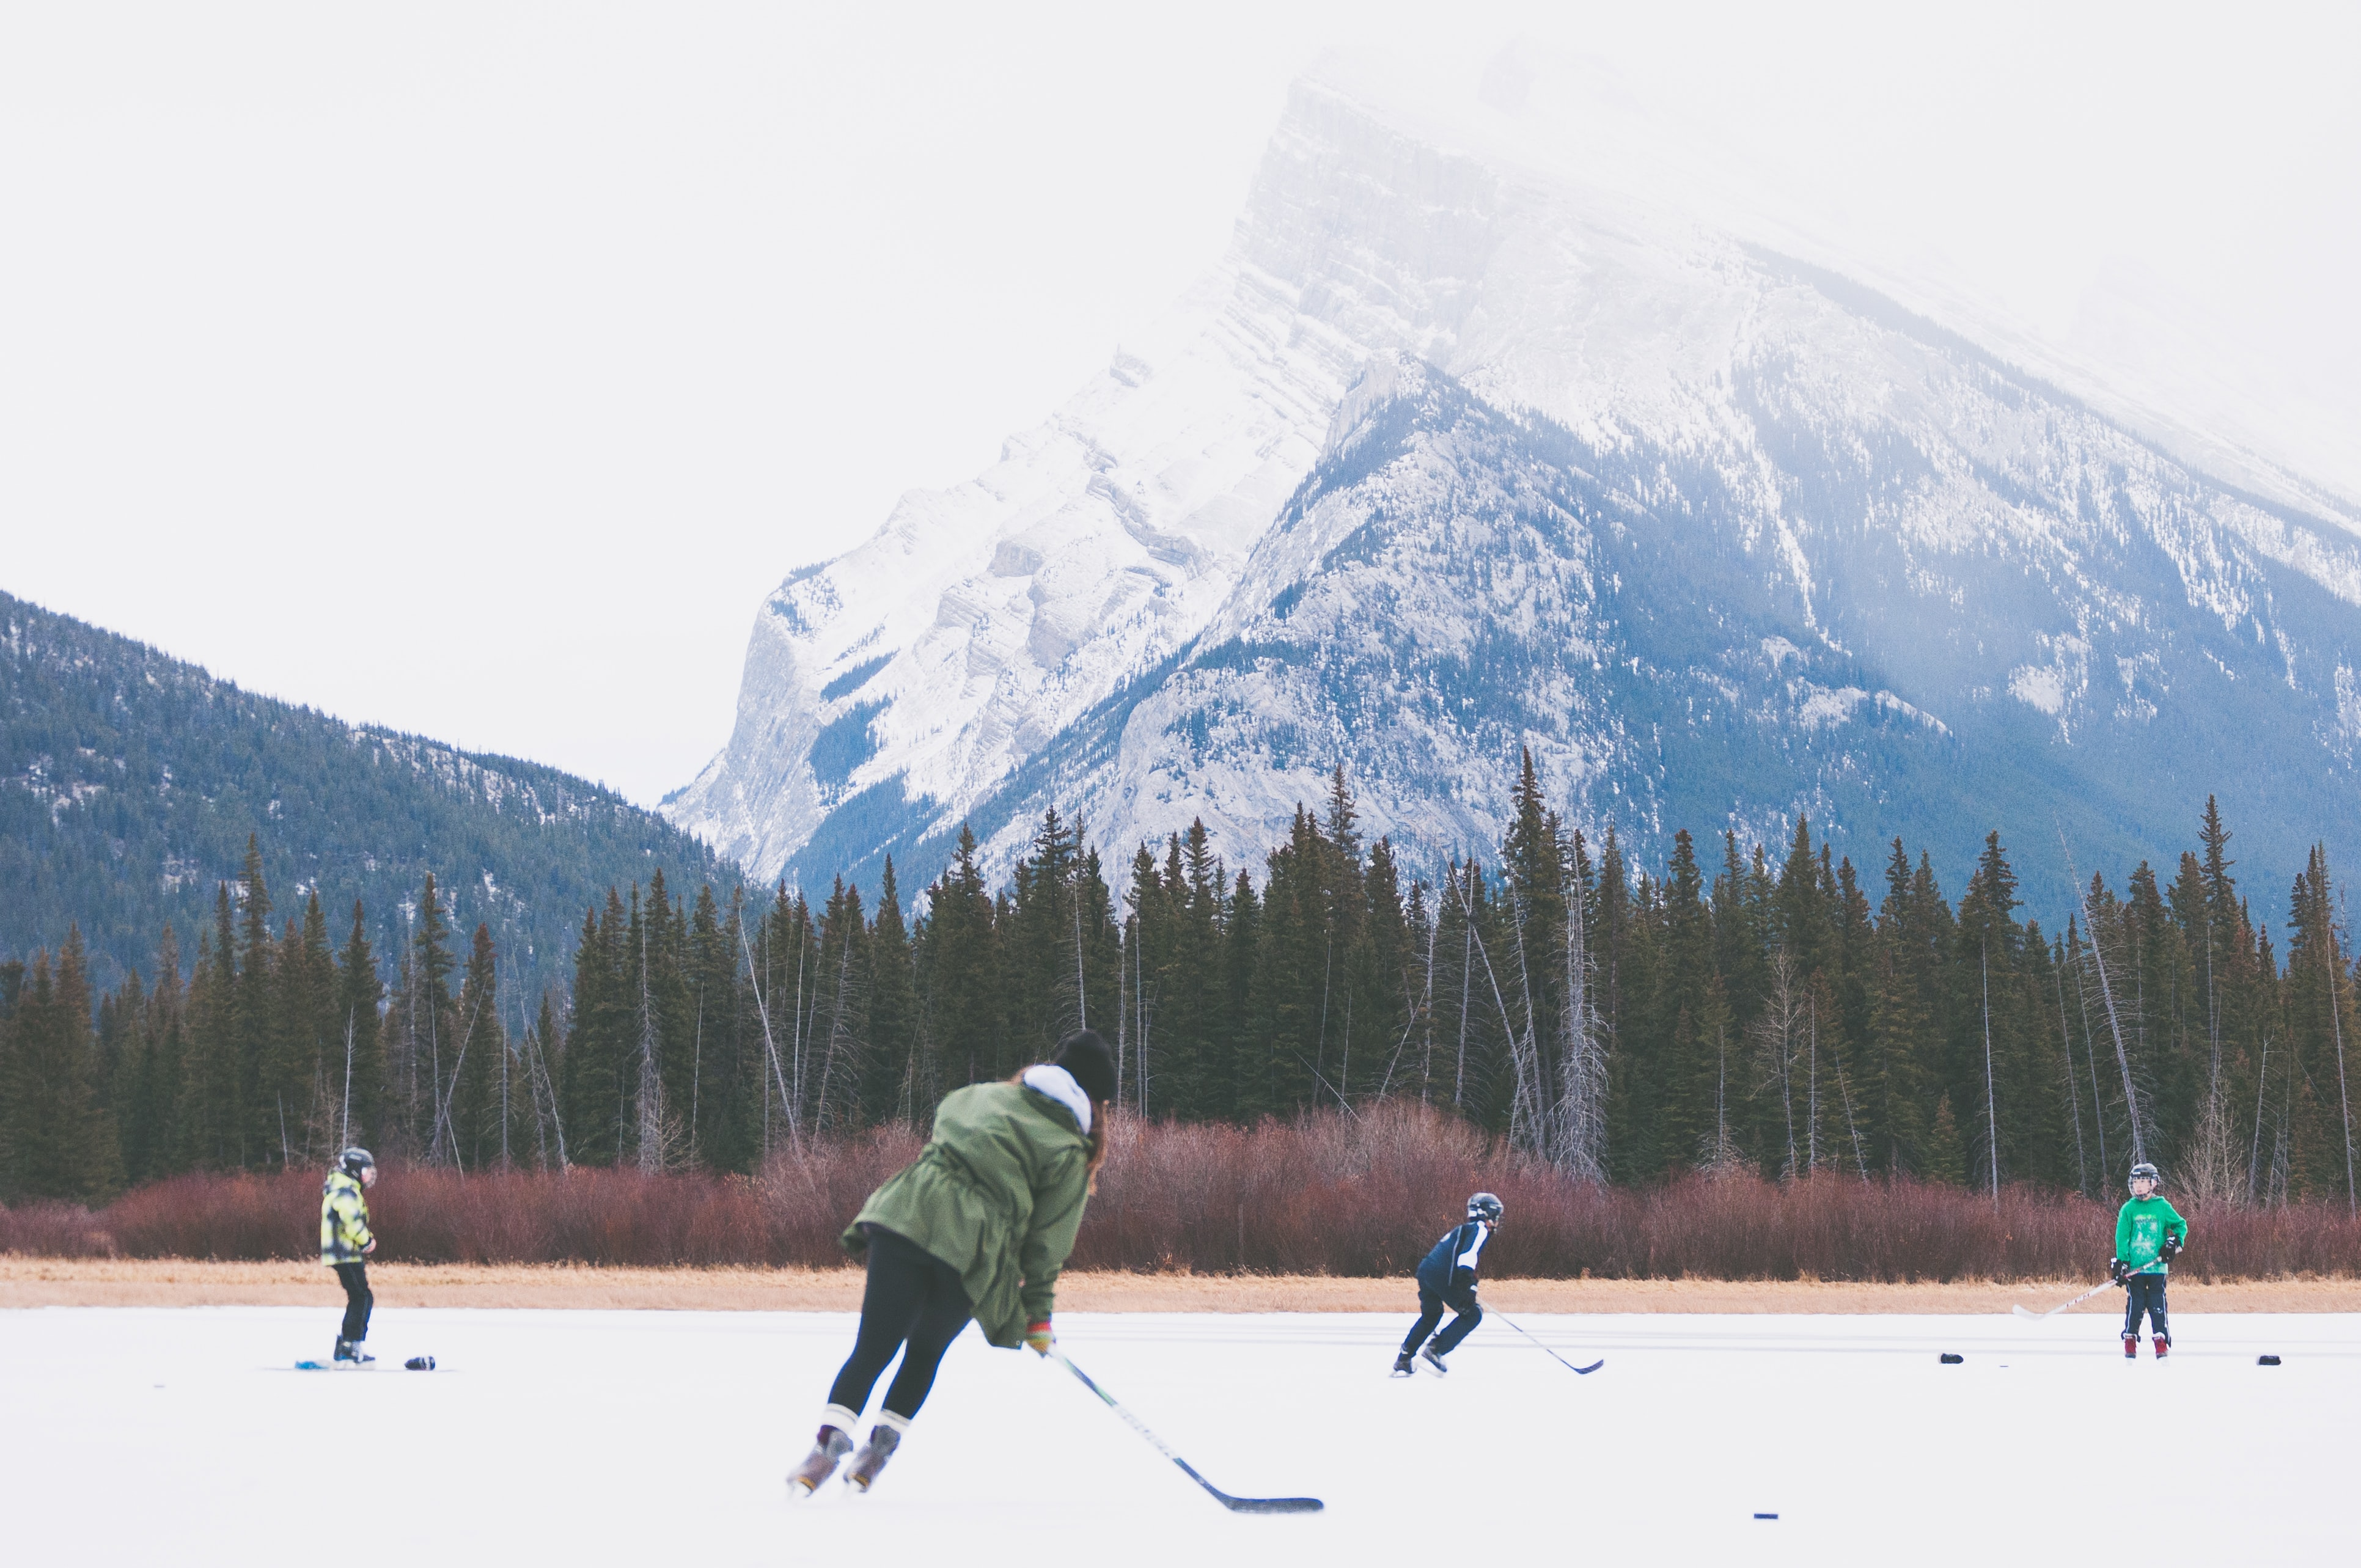 Children playing ice hockey in Banff National Park